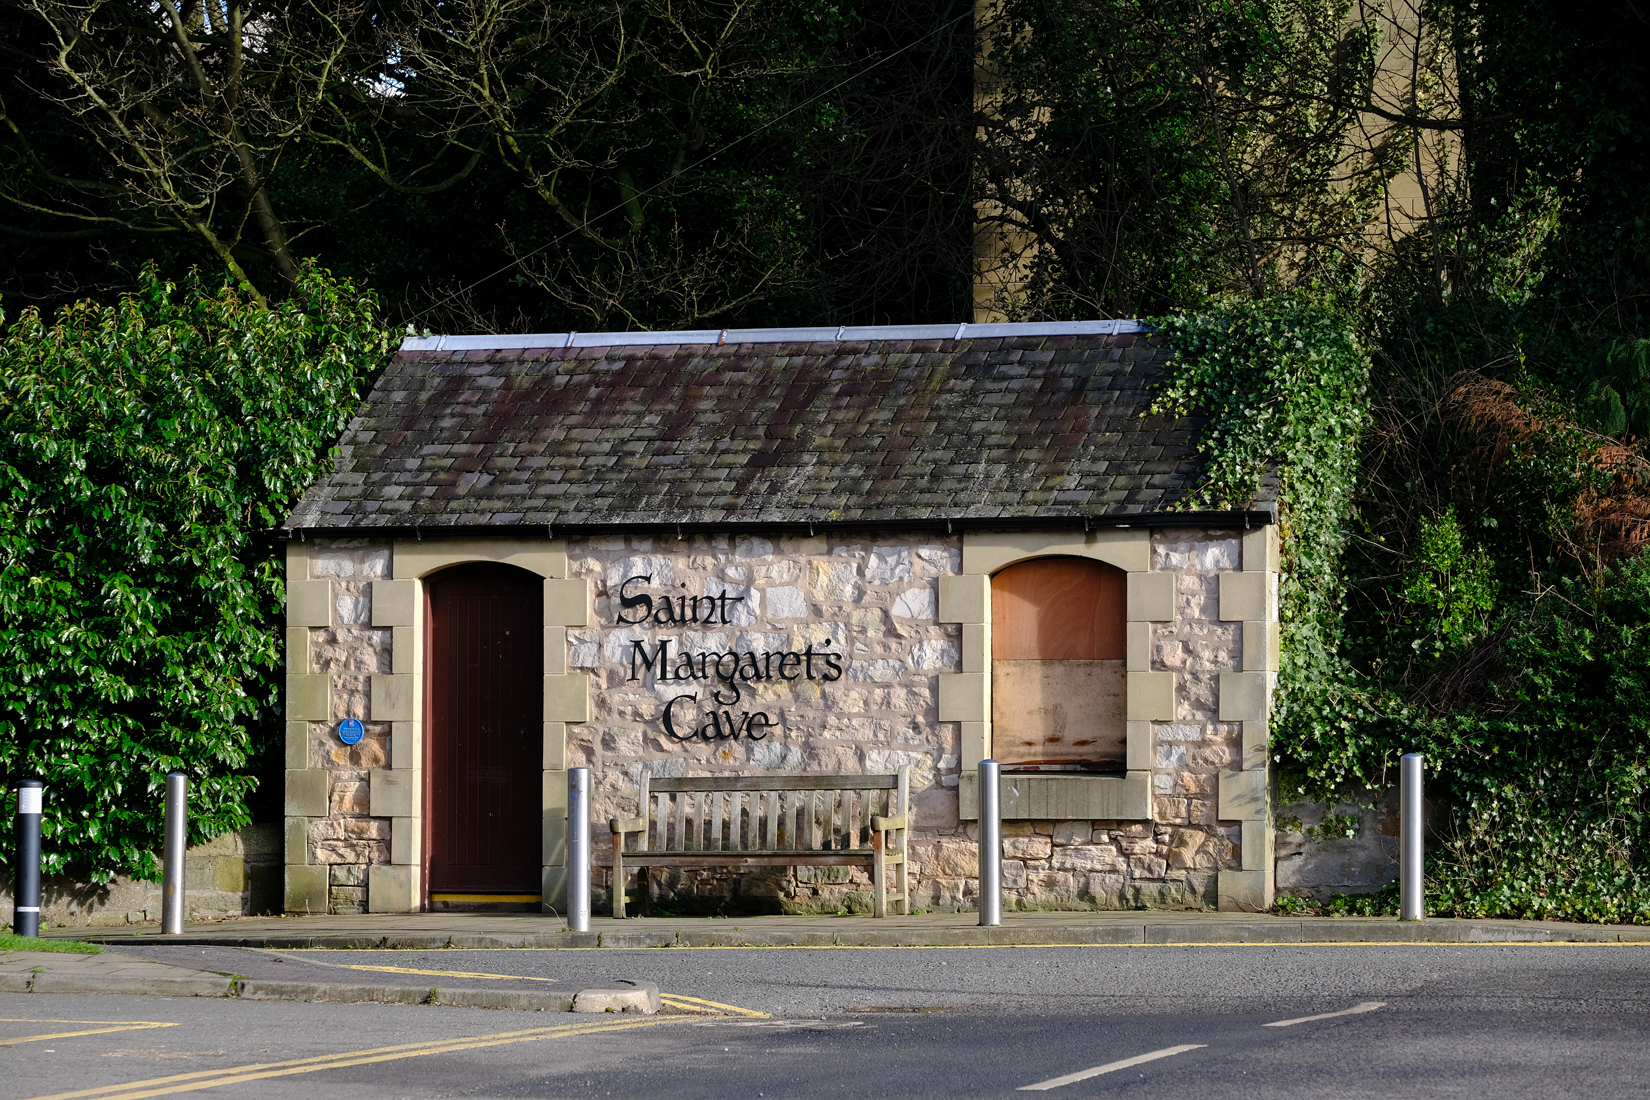 Small building surrounded by tress and road in front. It has writing Saint Margaret's Cave with doorway on left and window on right